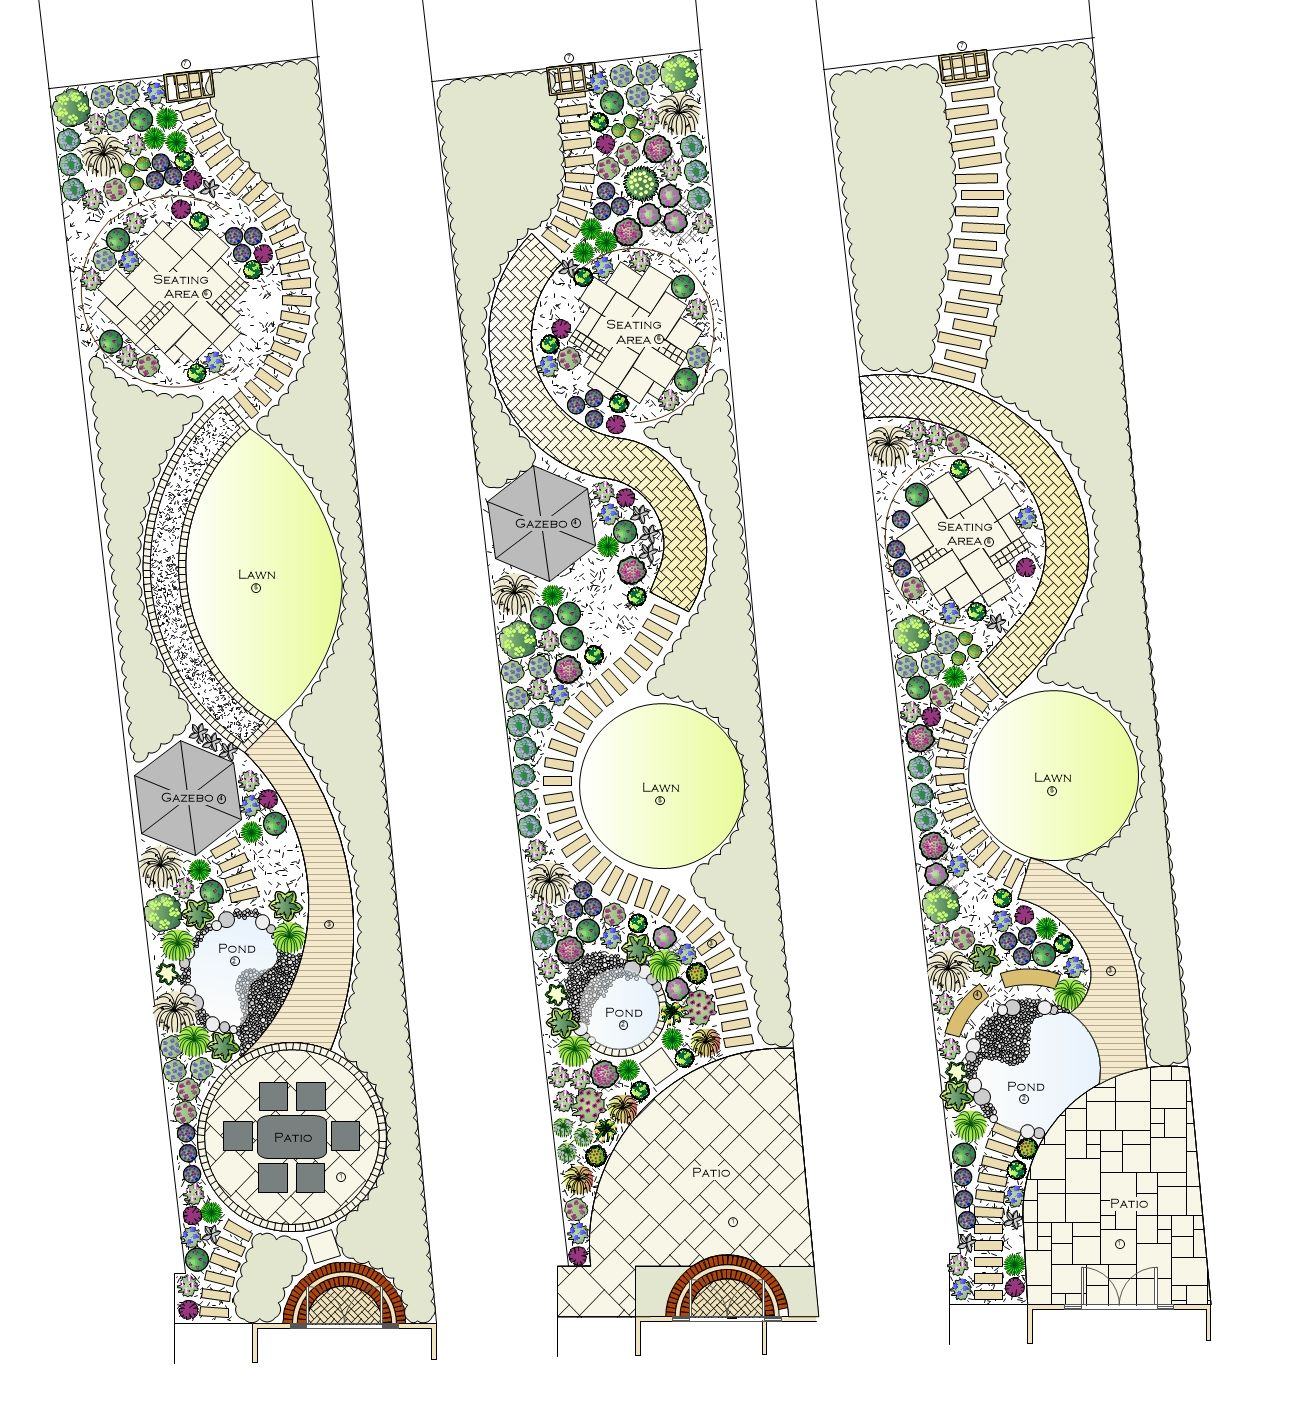 Long Narrow Garden Design Ideas: Designs For A Long Narrow Garden. Note Clay Pavers Used